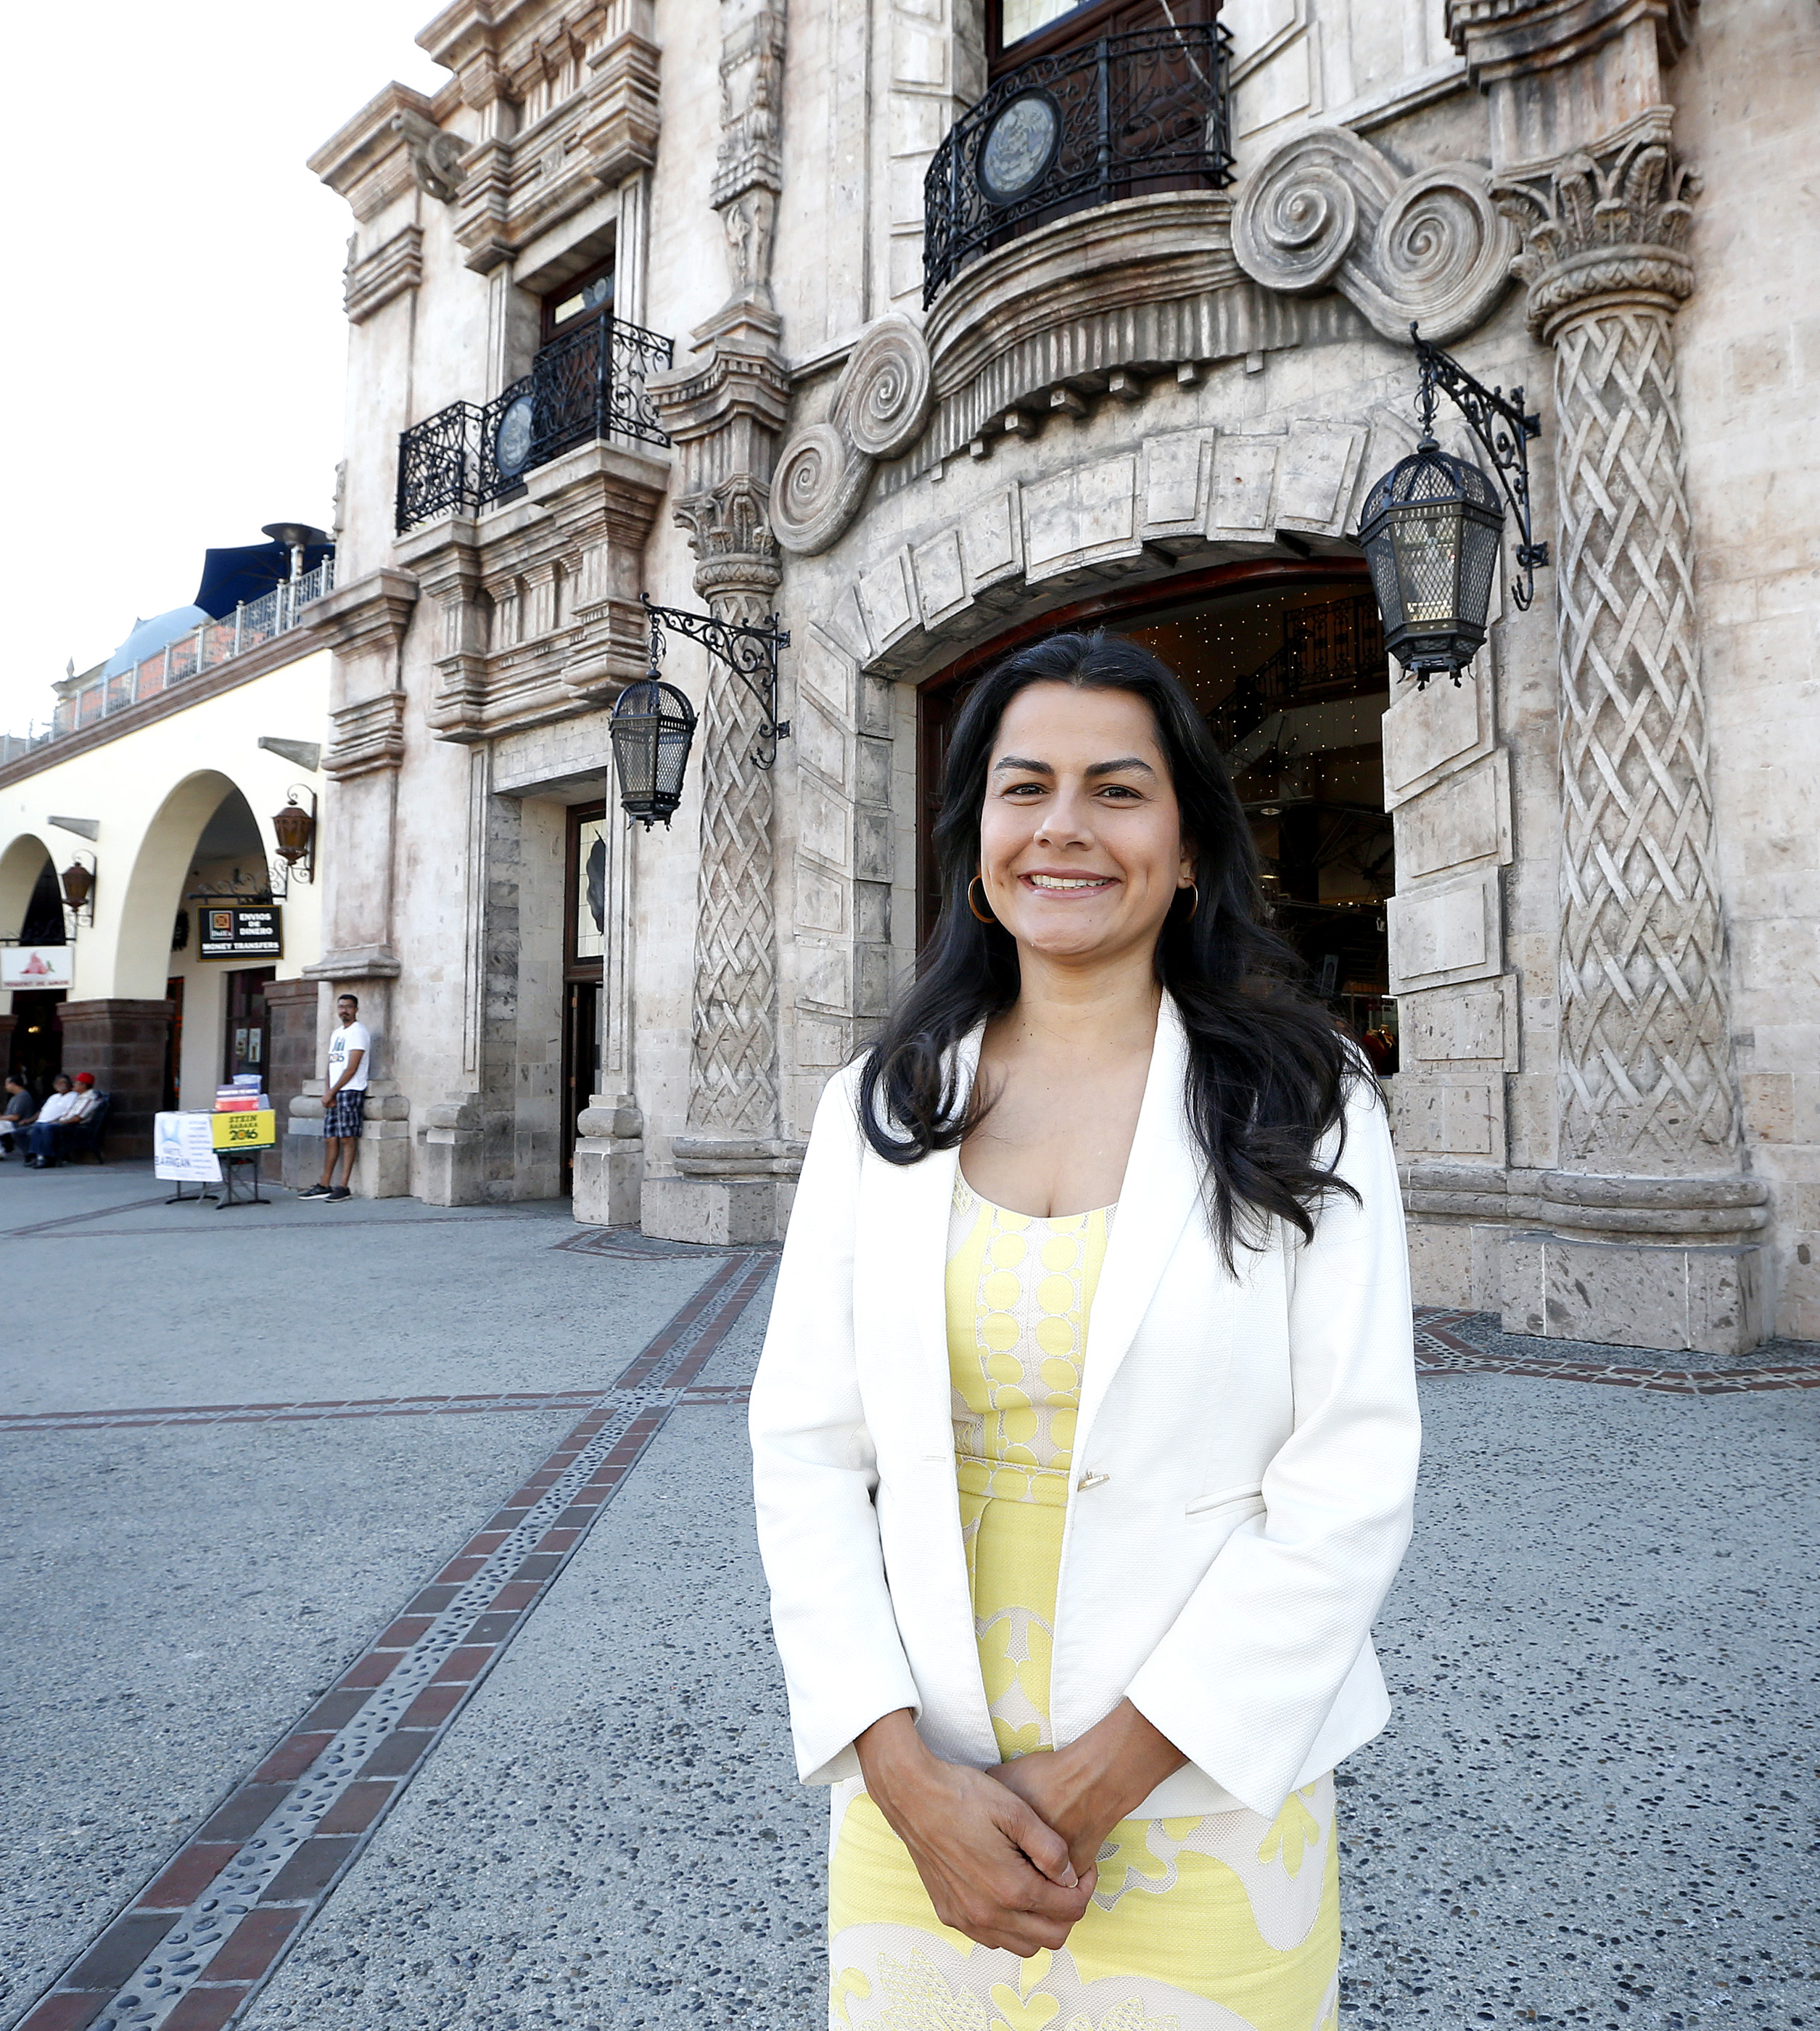 10/21/16/ LOS ANGELES/Nanette Barragan, attorney and candidate for the United States House of Representatives in California's 44th district, visits Lynwoods Plaza Mexico. (Photo Aurelia Ventura/ La Opinion)